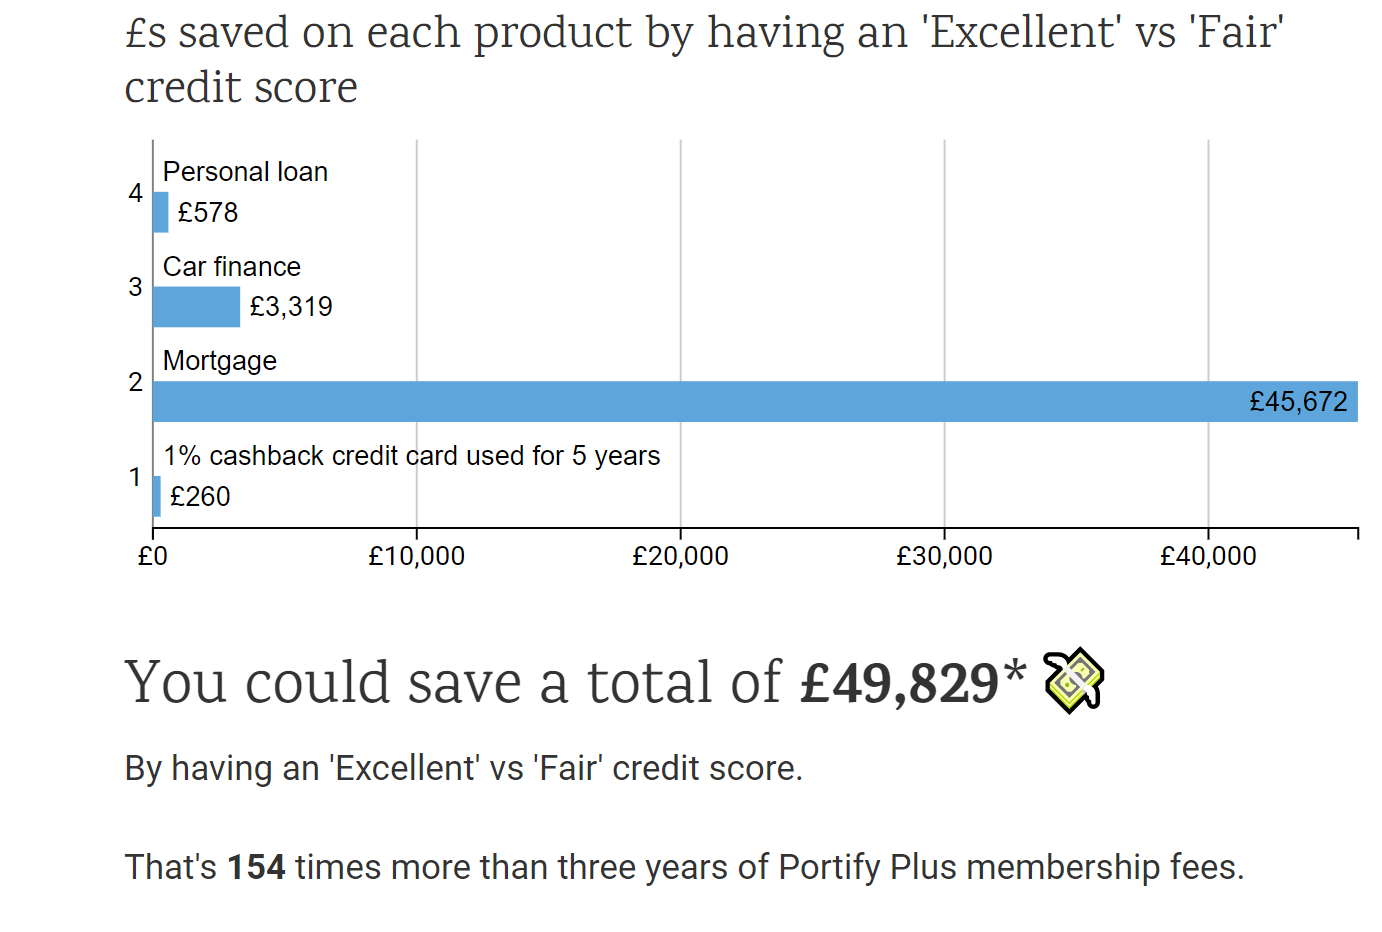 Chart showing how much a good credit score could save you in credit products in the UK